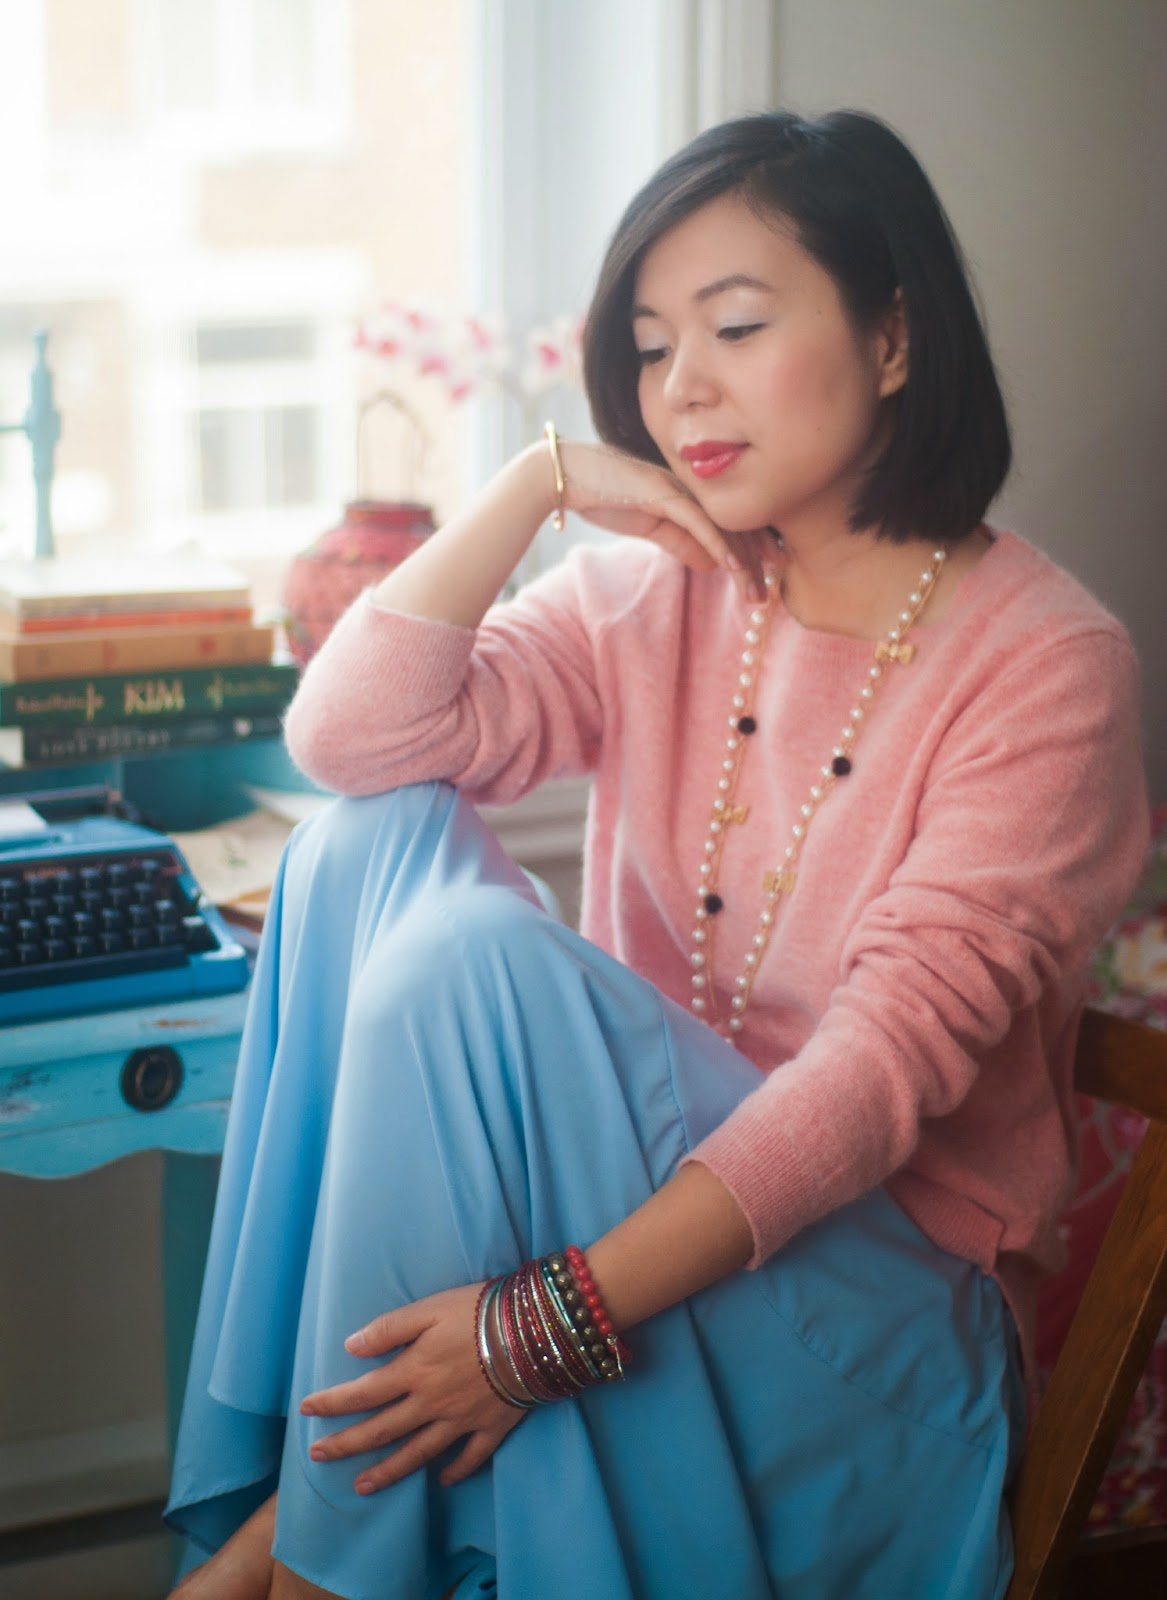 pink fuzzy sweater blue skirt typwriter winter